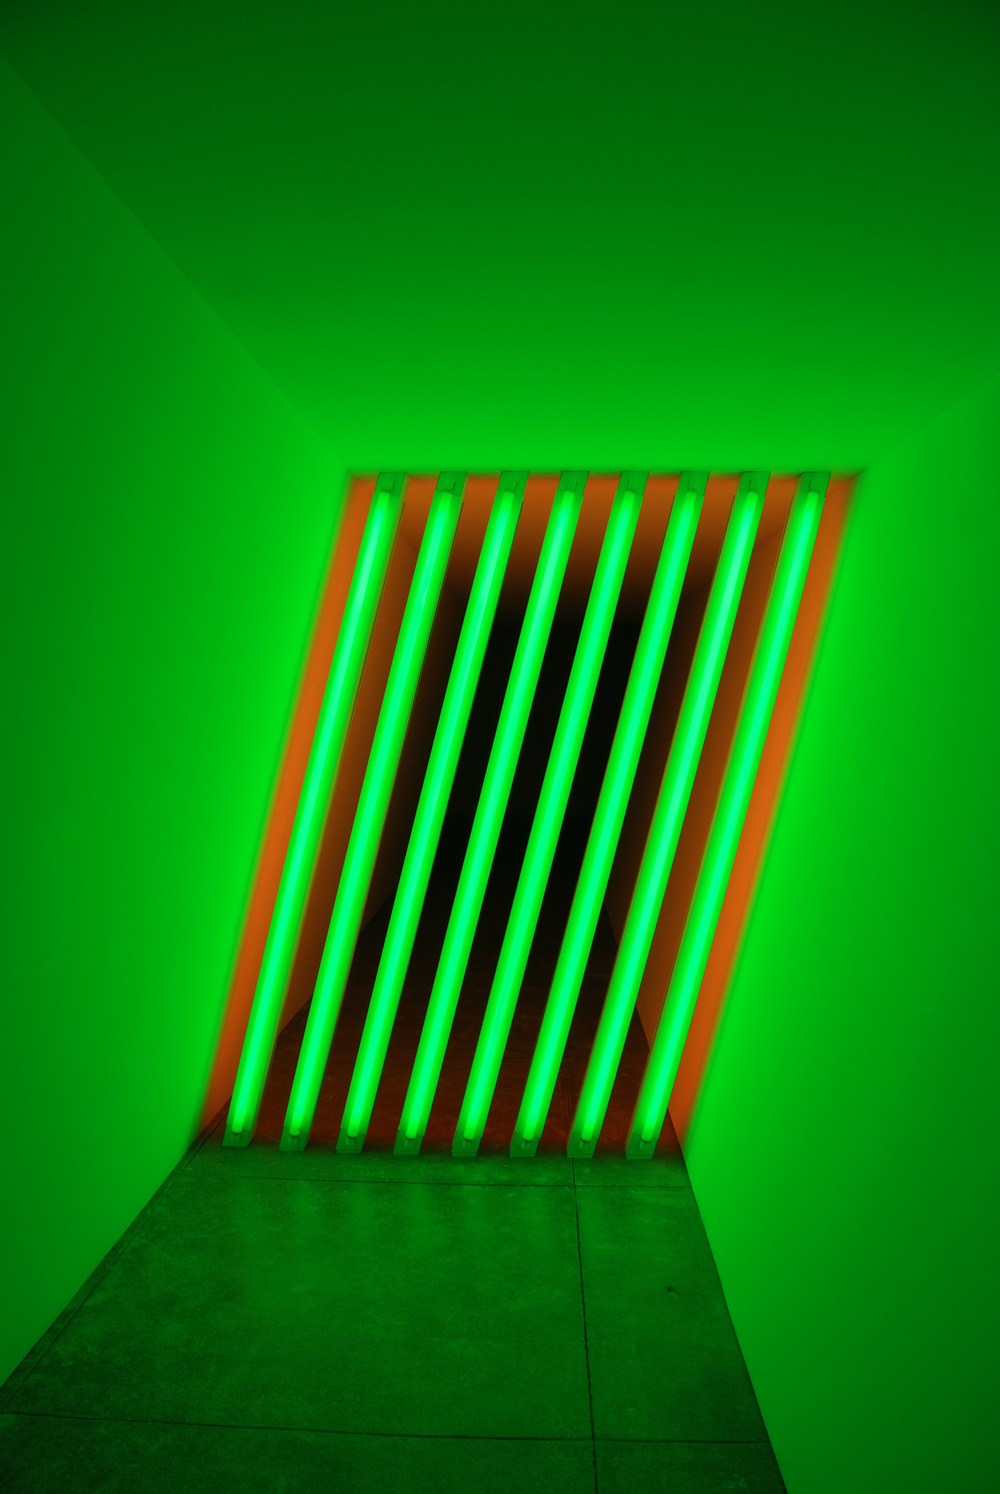 Detail of a Flavin installation at the Chinati Foundation in Marfa TX.